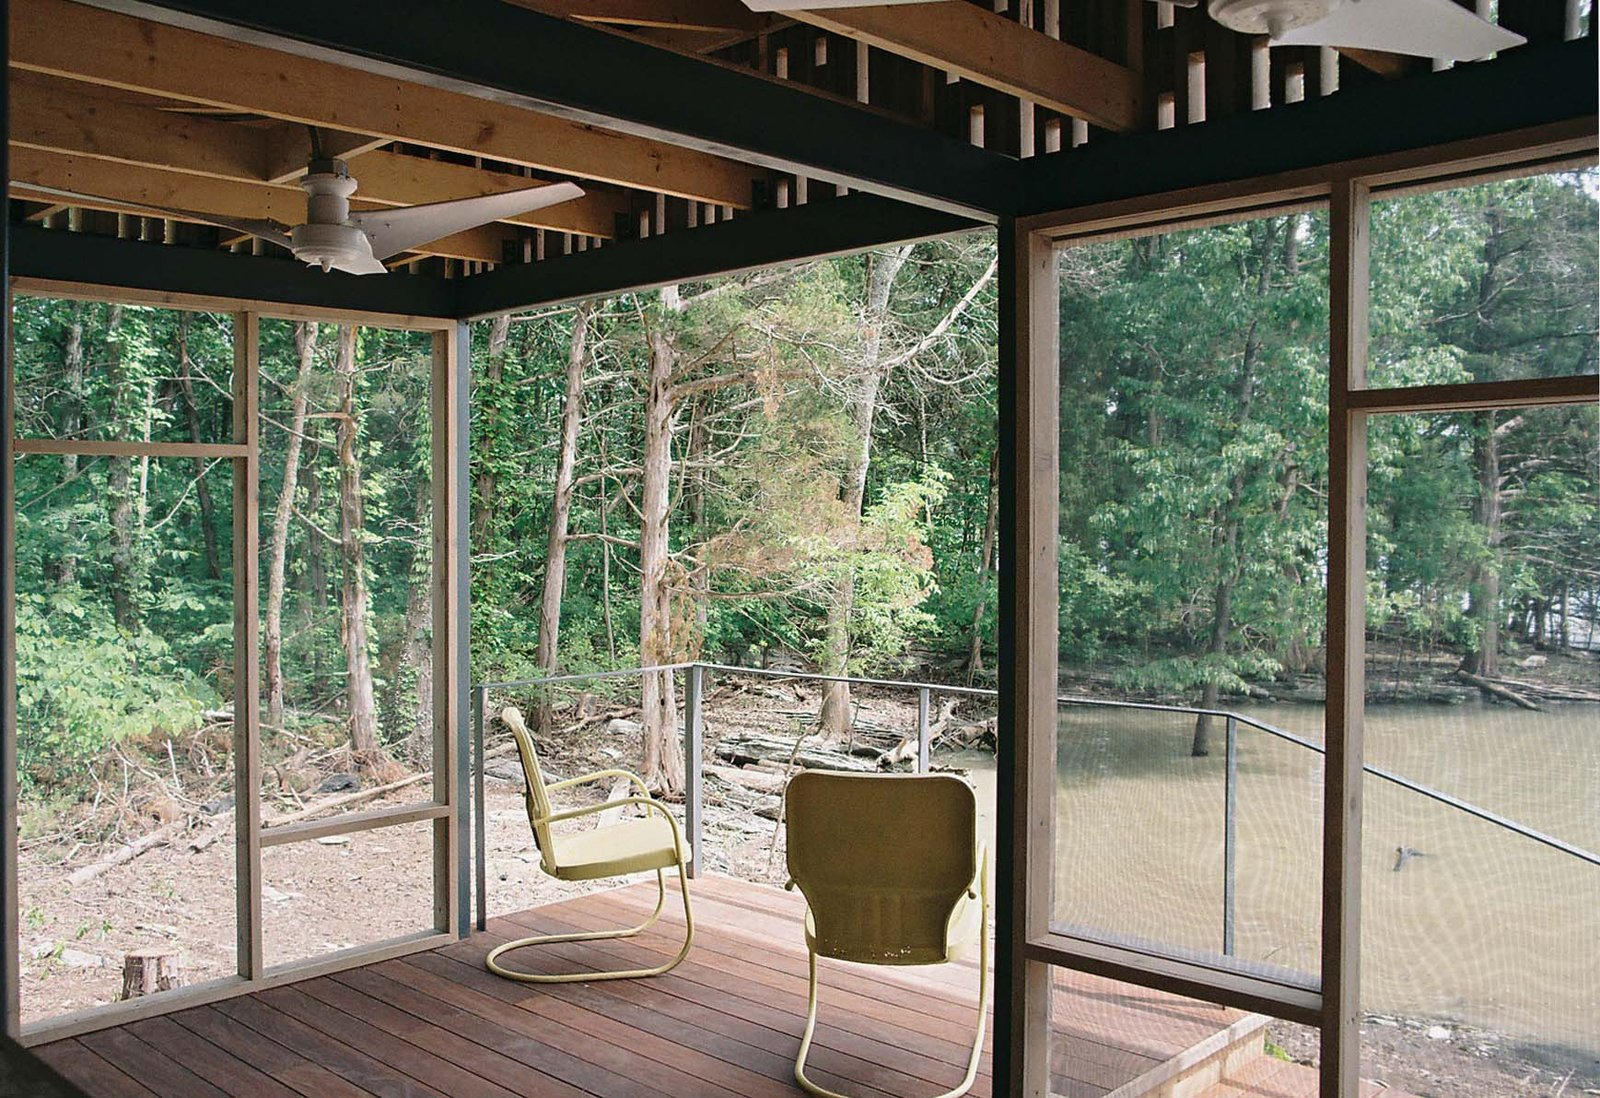 Shelton's architect, Brandon Pace,designed and fabricated cedar panels backed with insect screens that snapped to the pavilion's steel structure, allowing assembly to be completed on site in just three days. Read the full story here. How to Build an Off the Grid Cabin - Photo 2 of 4